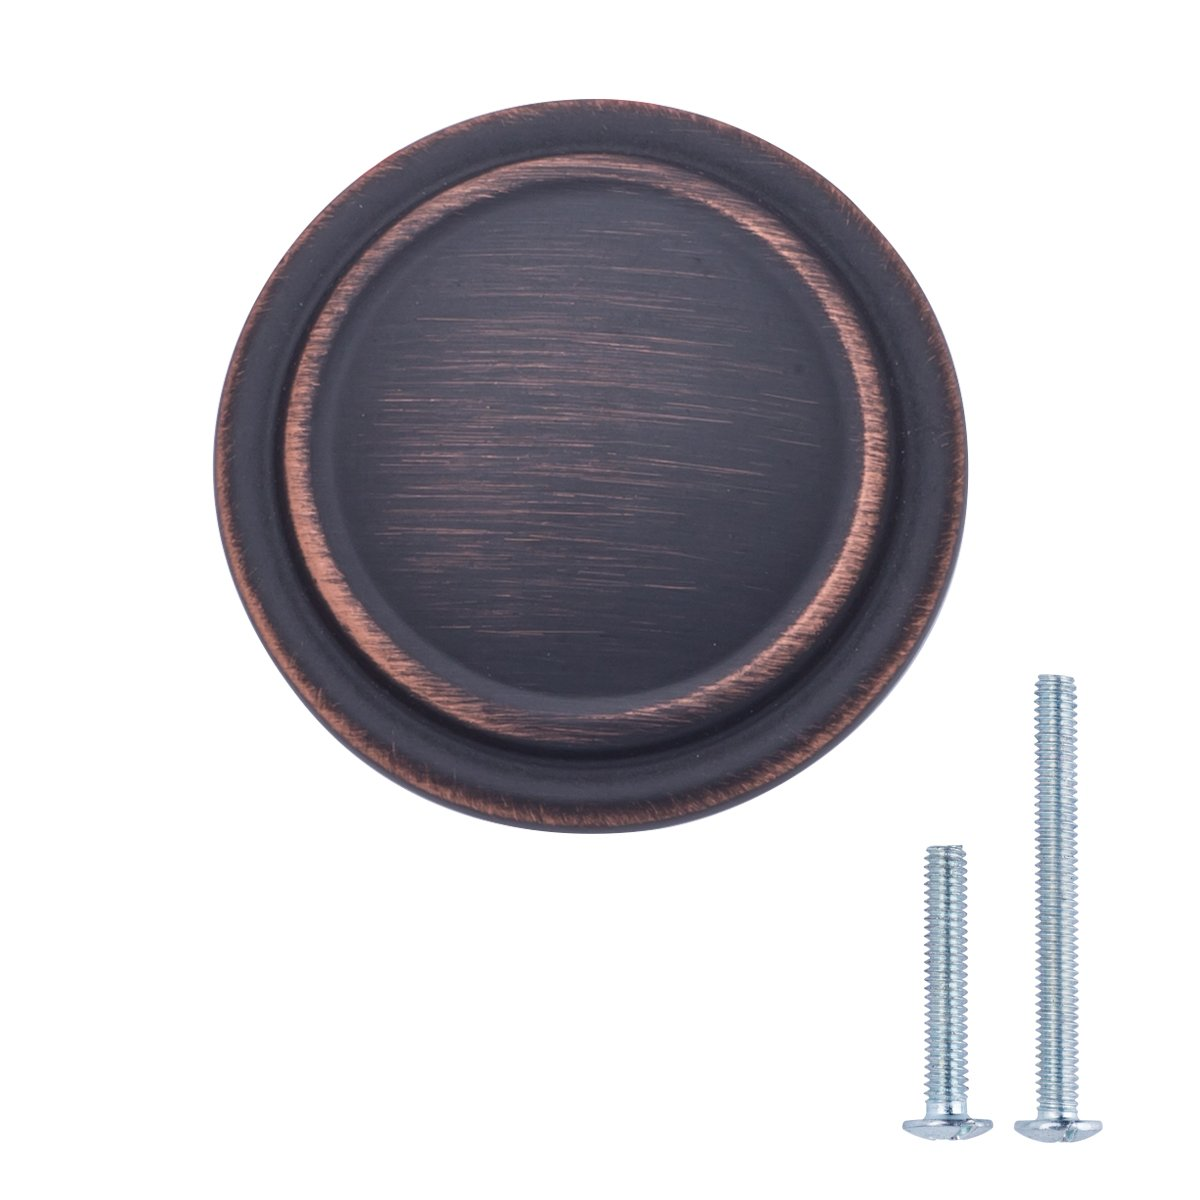 AmazonBasics Straight Top Ring Cabinet Knob, 1.25'' Diameter, Oil Rubbed Bronze, 10-Pack